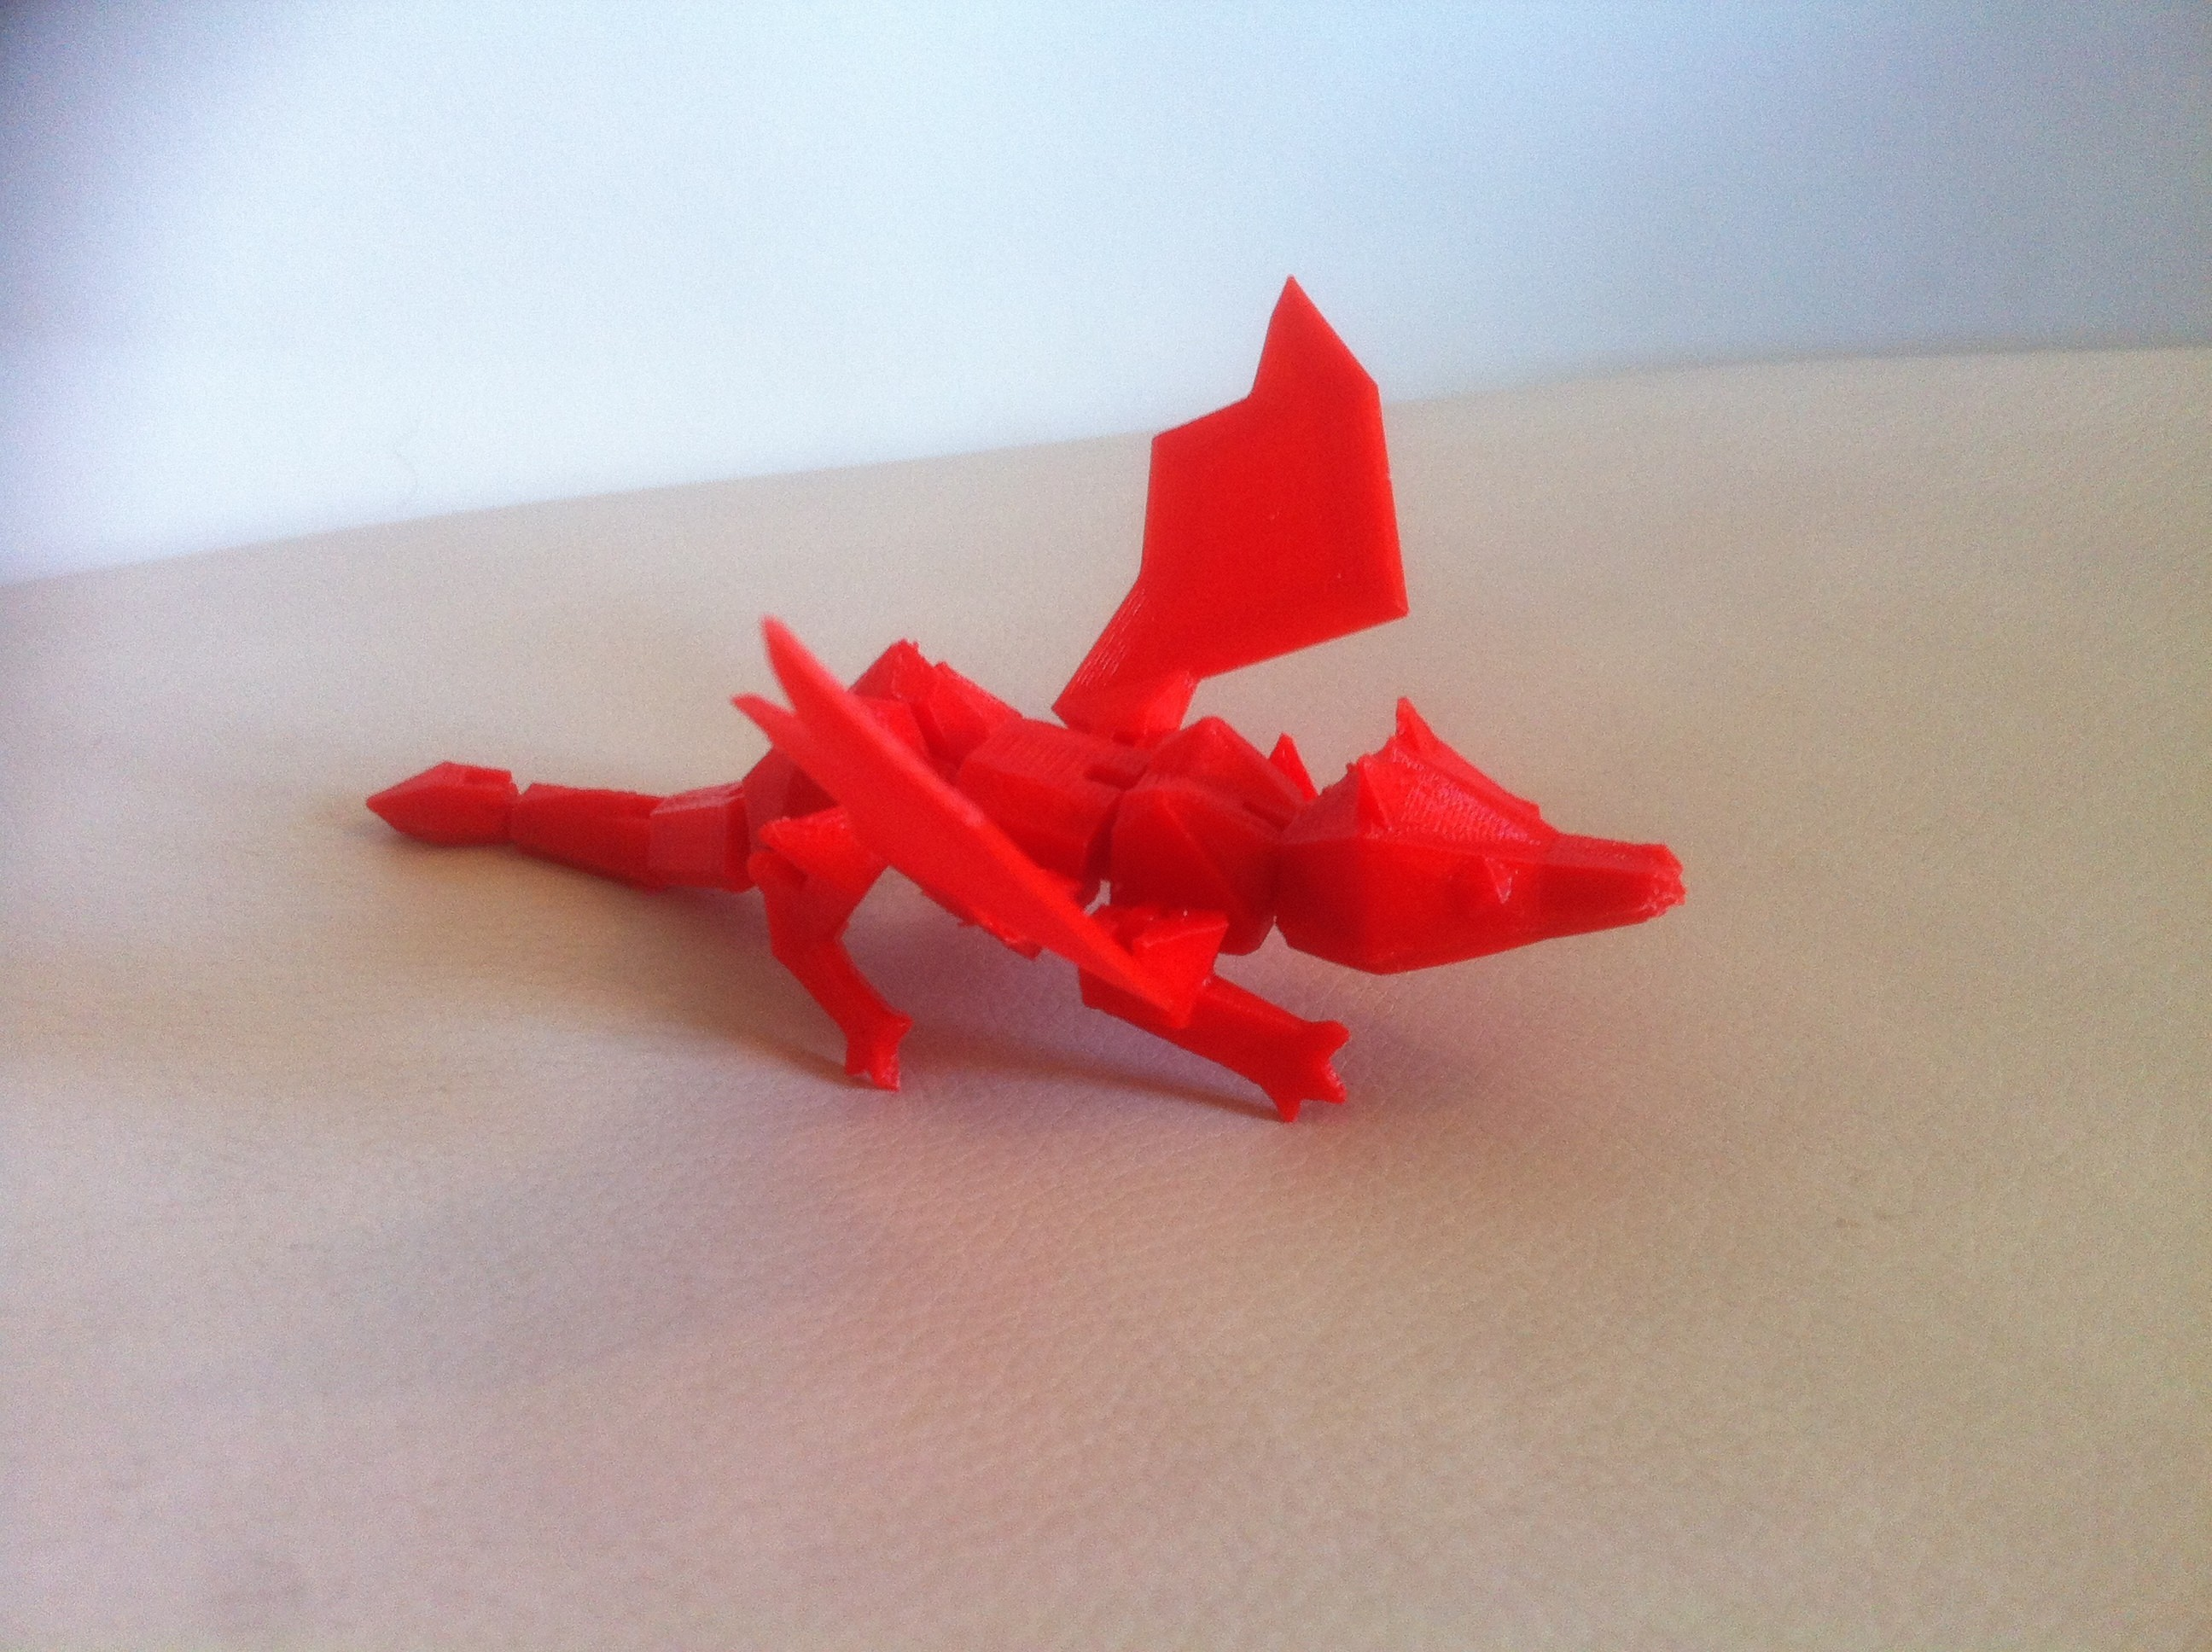 IMG_3860.JPG Download STL file My little Dragon - Articulated - Without support • 3D print model, baboon